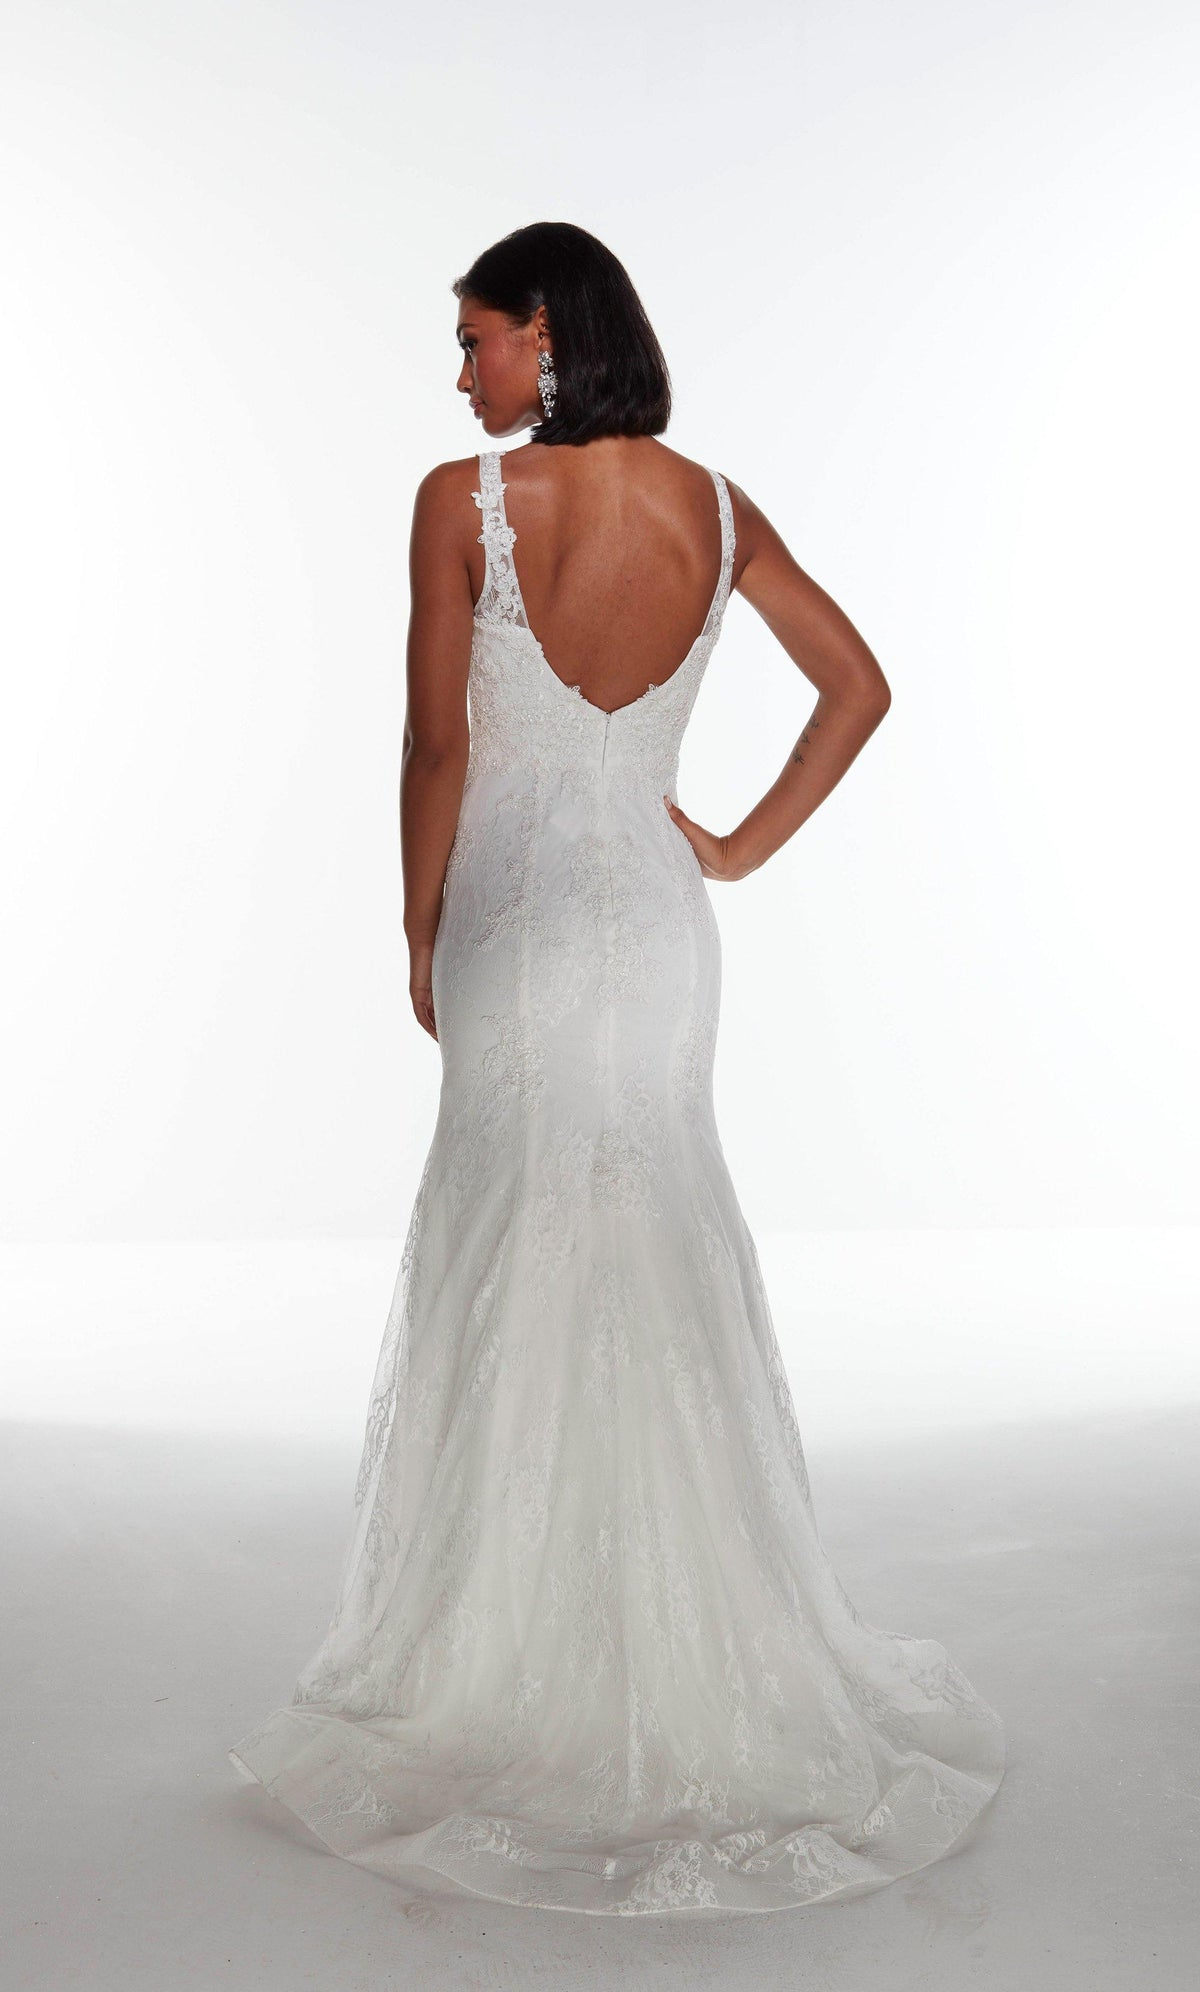 Diamond White lace mermaid style wedding dress with a V shaped back and train